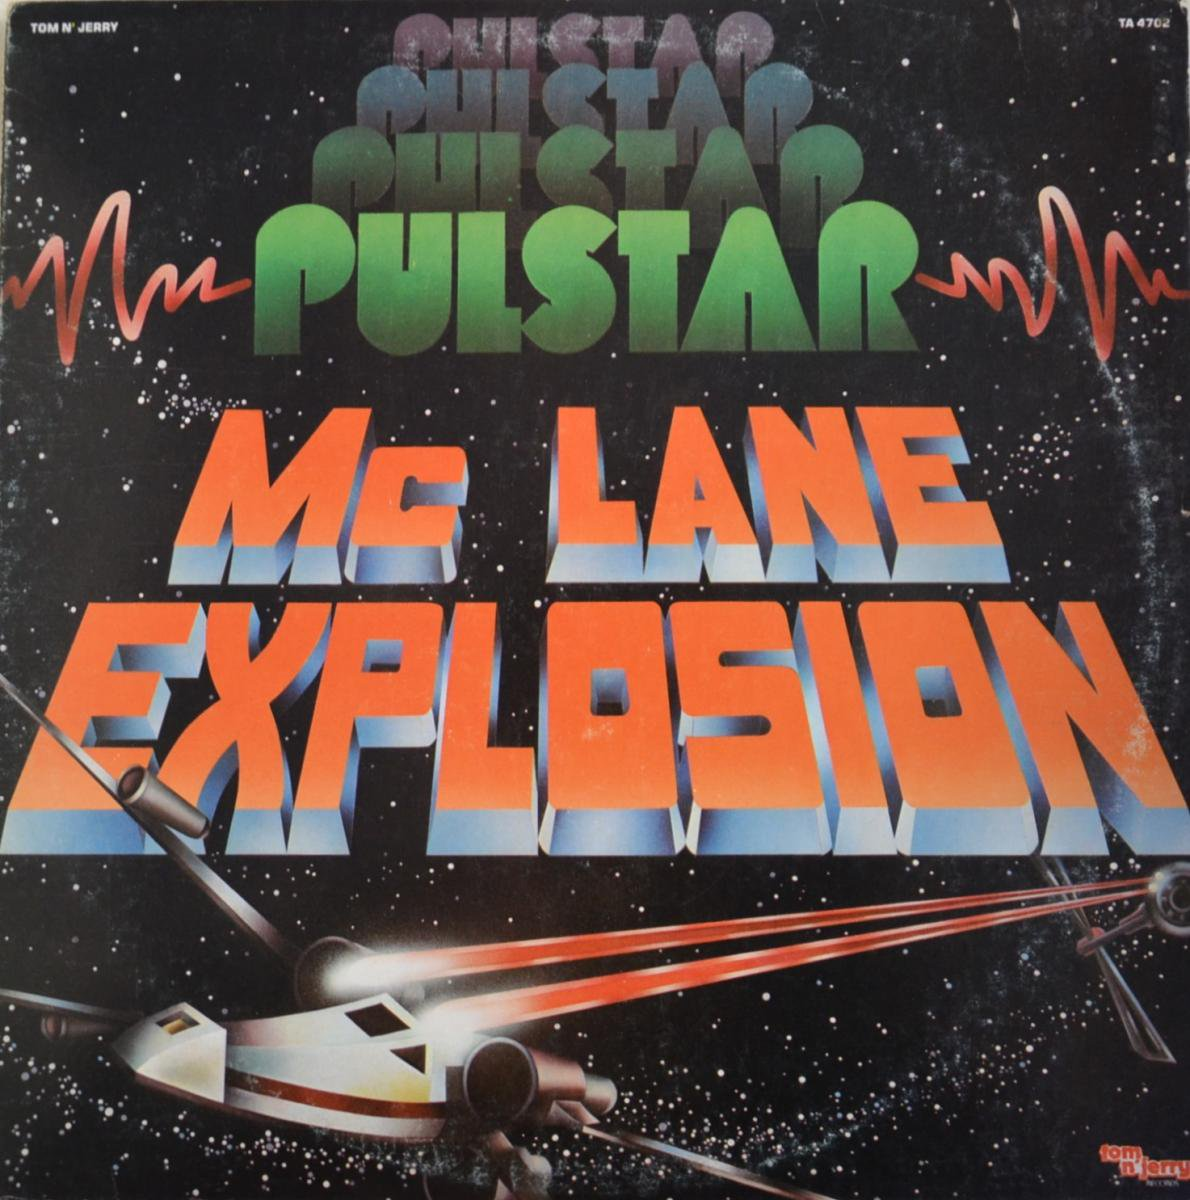 MC LANE EXPLOSION / PULSTAR (LP)